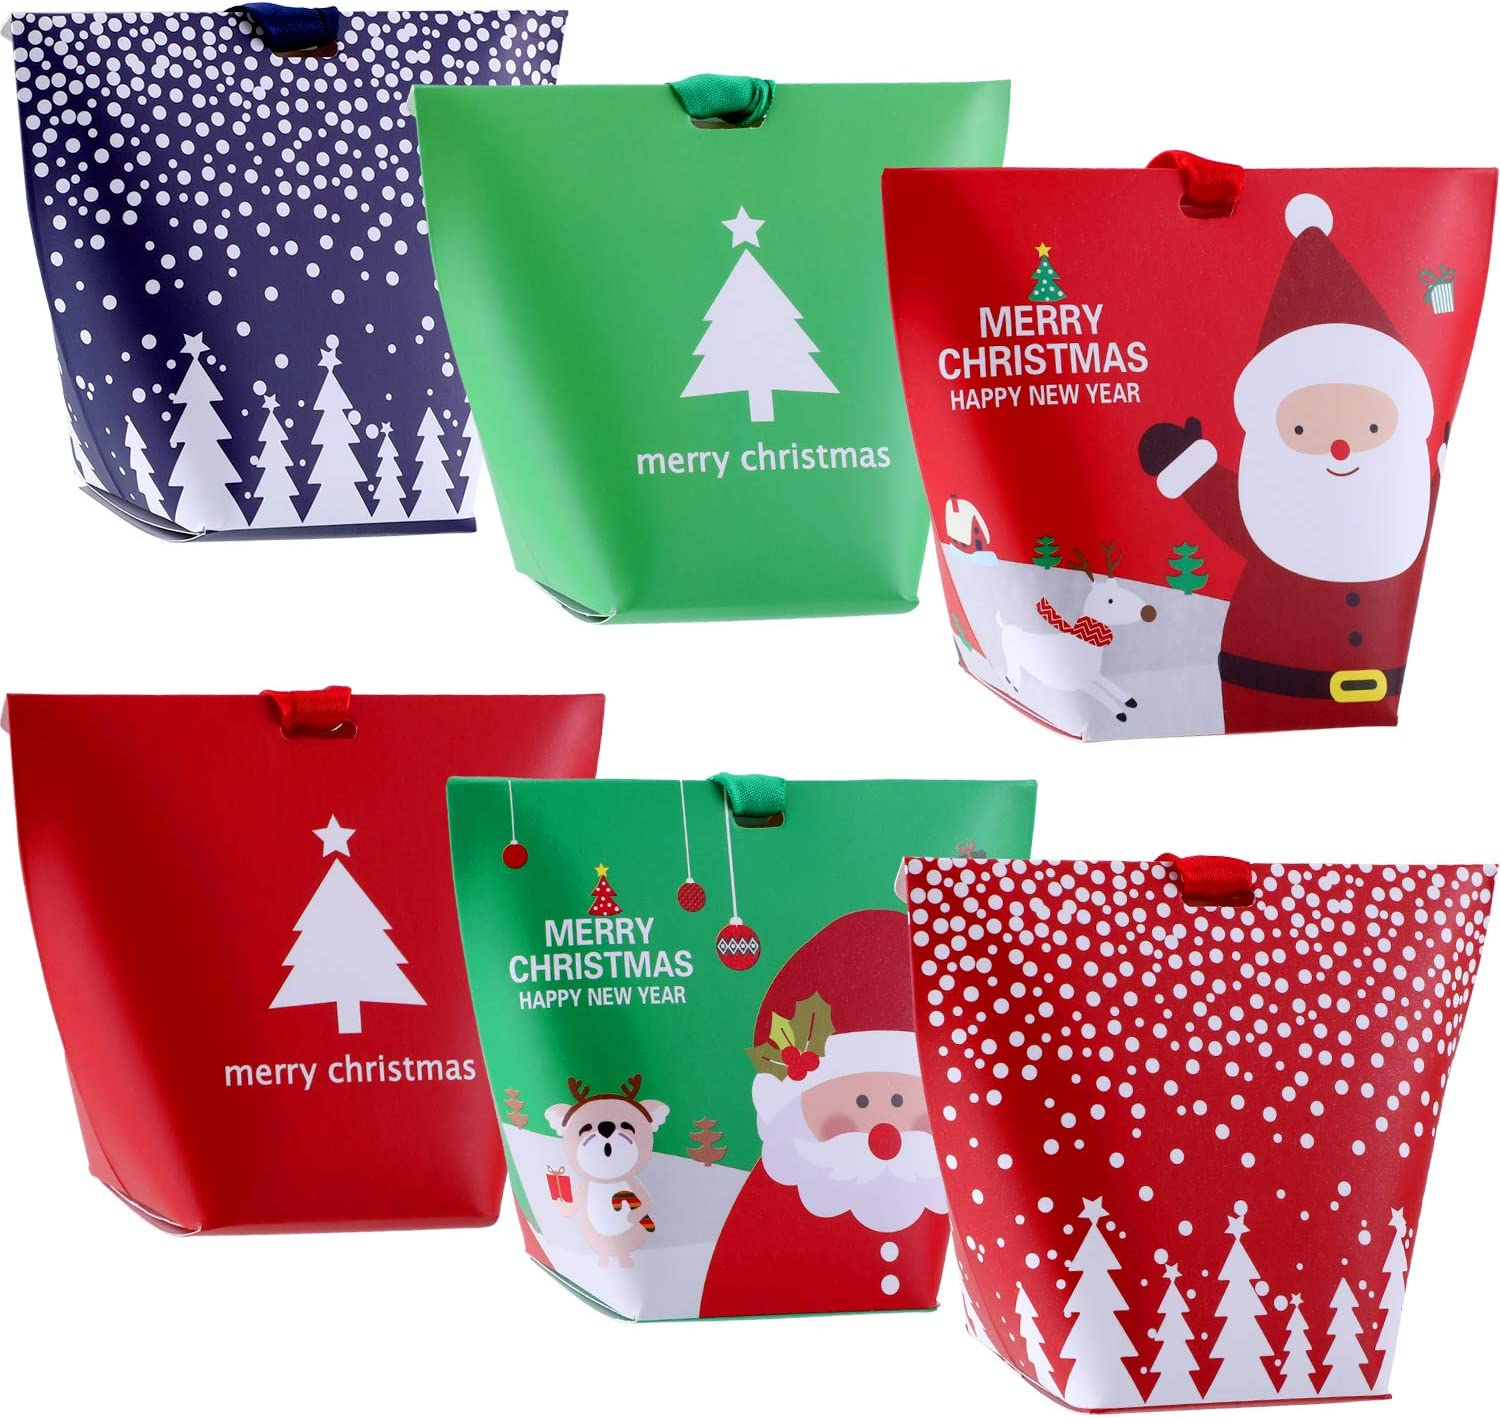 Jovitec 18 Pieces Christmas Candy Treat Boxes with Ribbons Xmas Cookie Boxes Gift Boxes with Christmas Elements Patterns for Christmas Party Favors